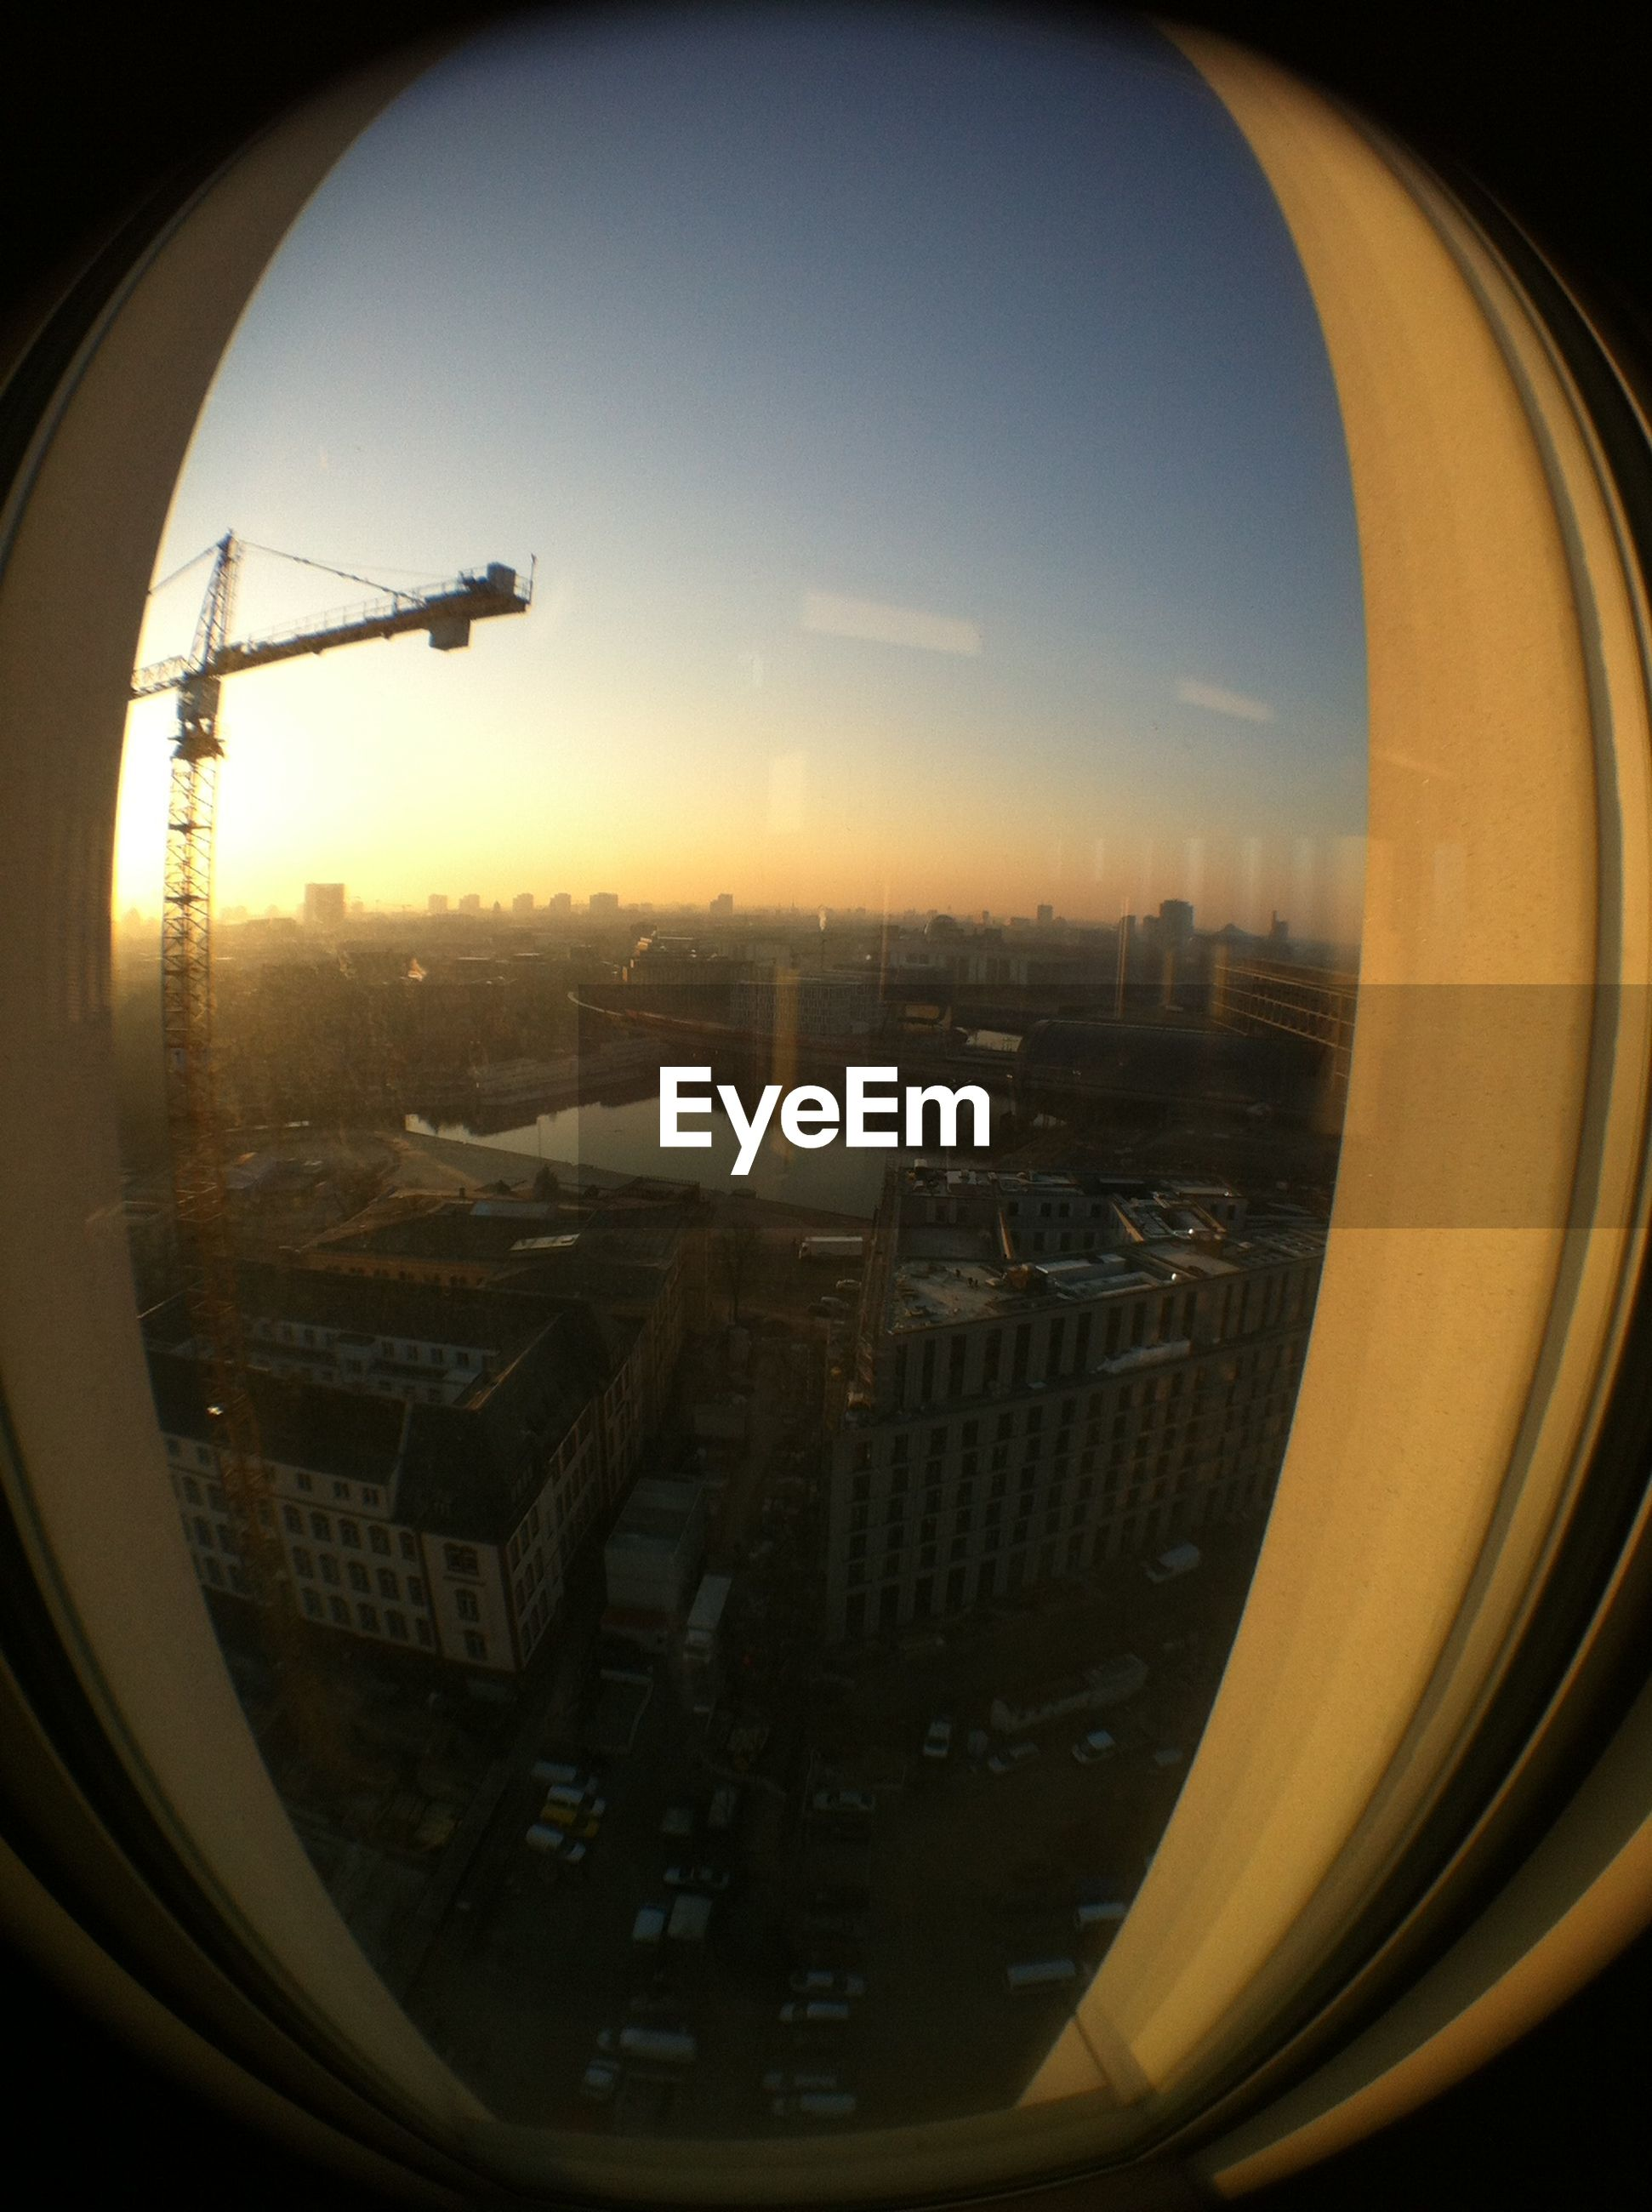 View of cityscape through airplane window